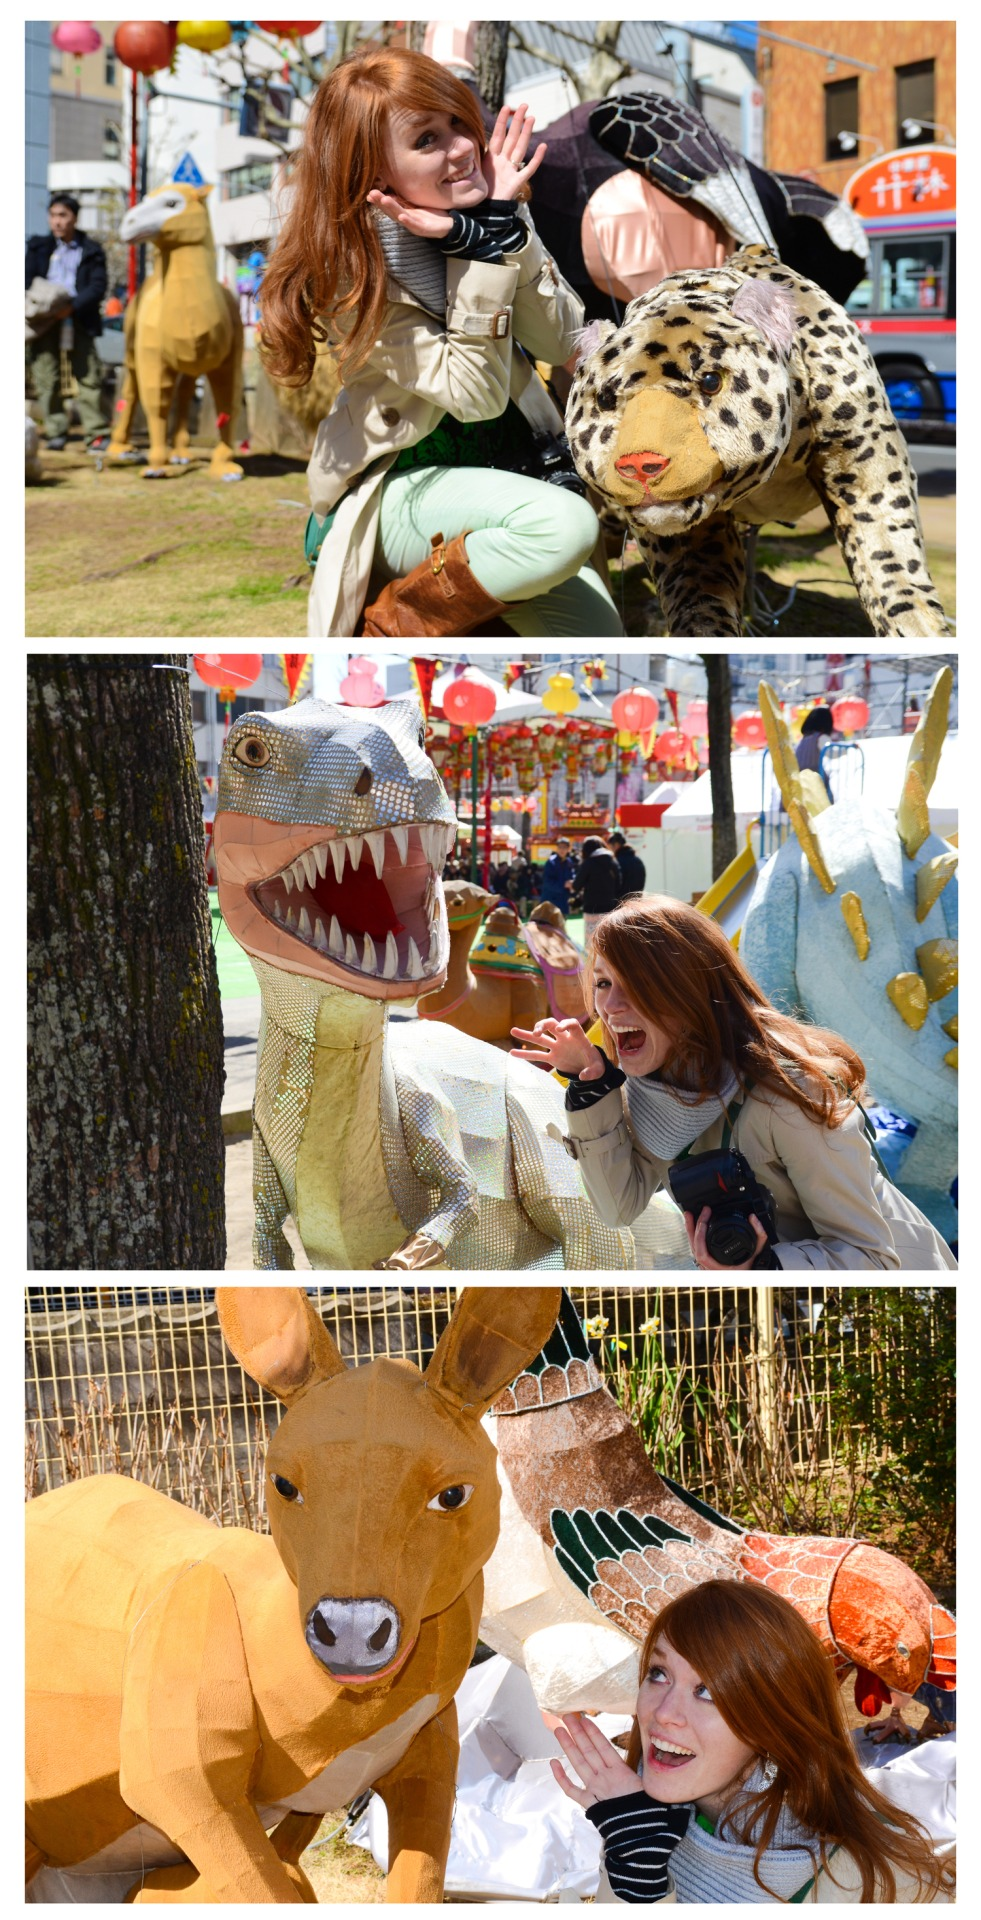 Sam's Favorite part of the Festival were the animal shaped laterns, obviously